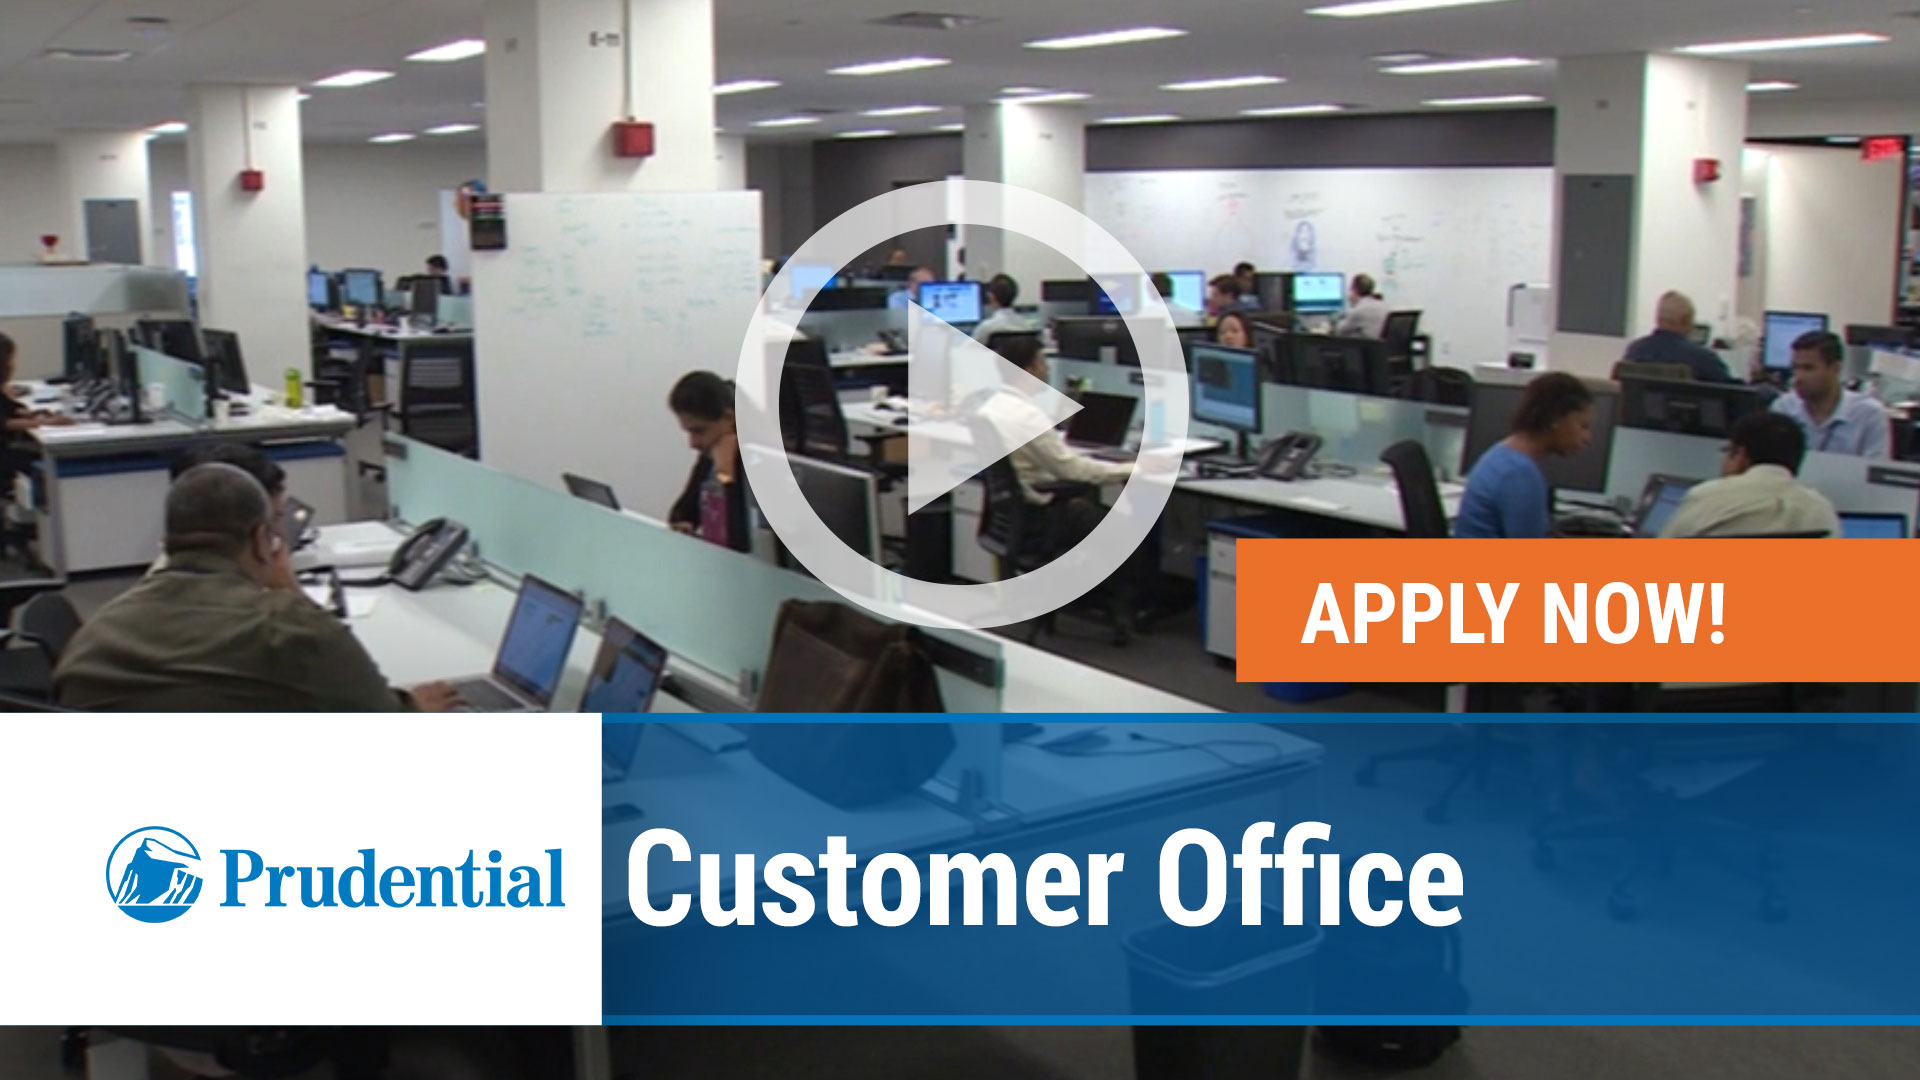 Watch our careers video for available job opening Customer Office in Sunnyvale, CA